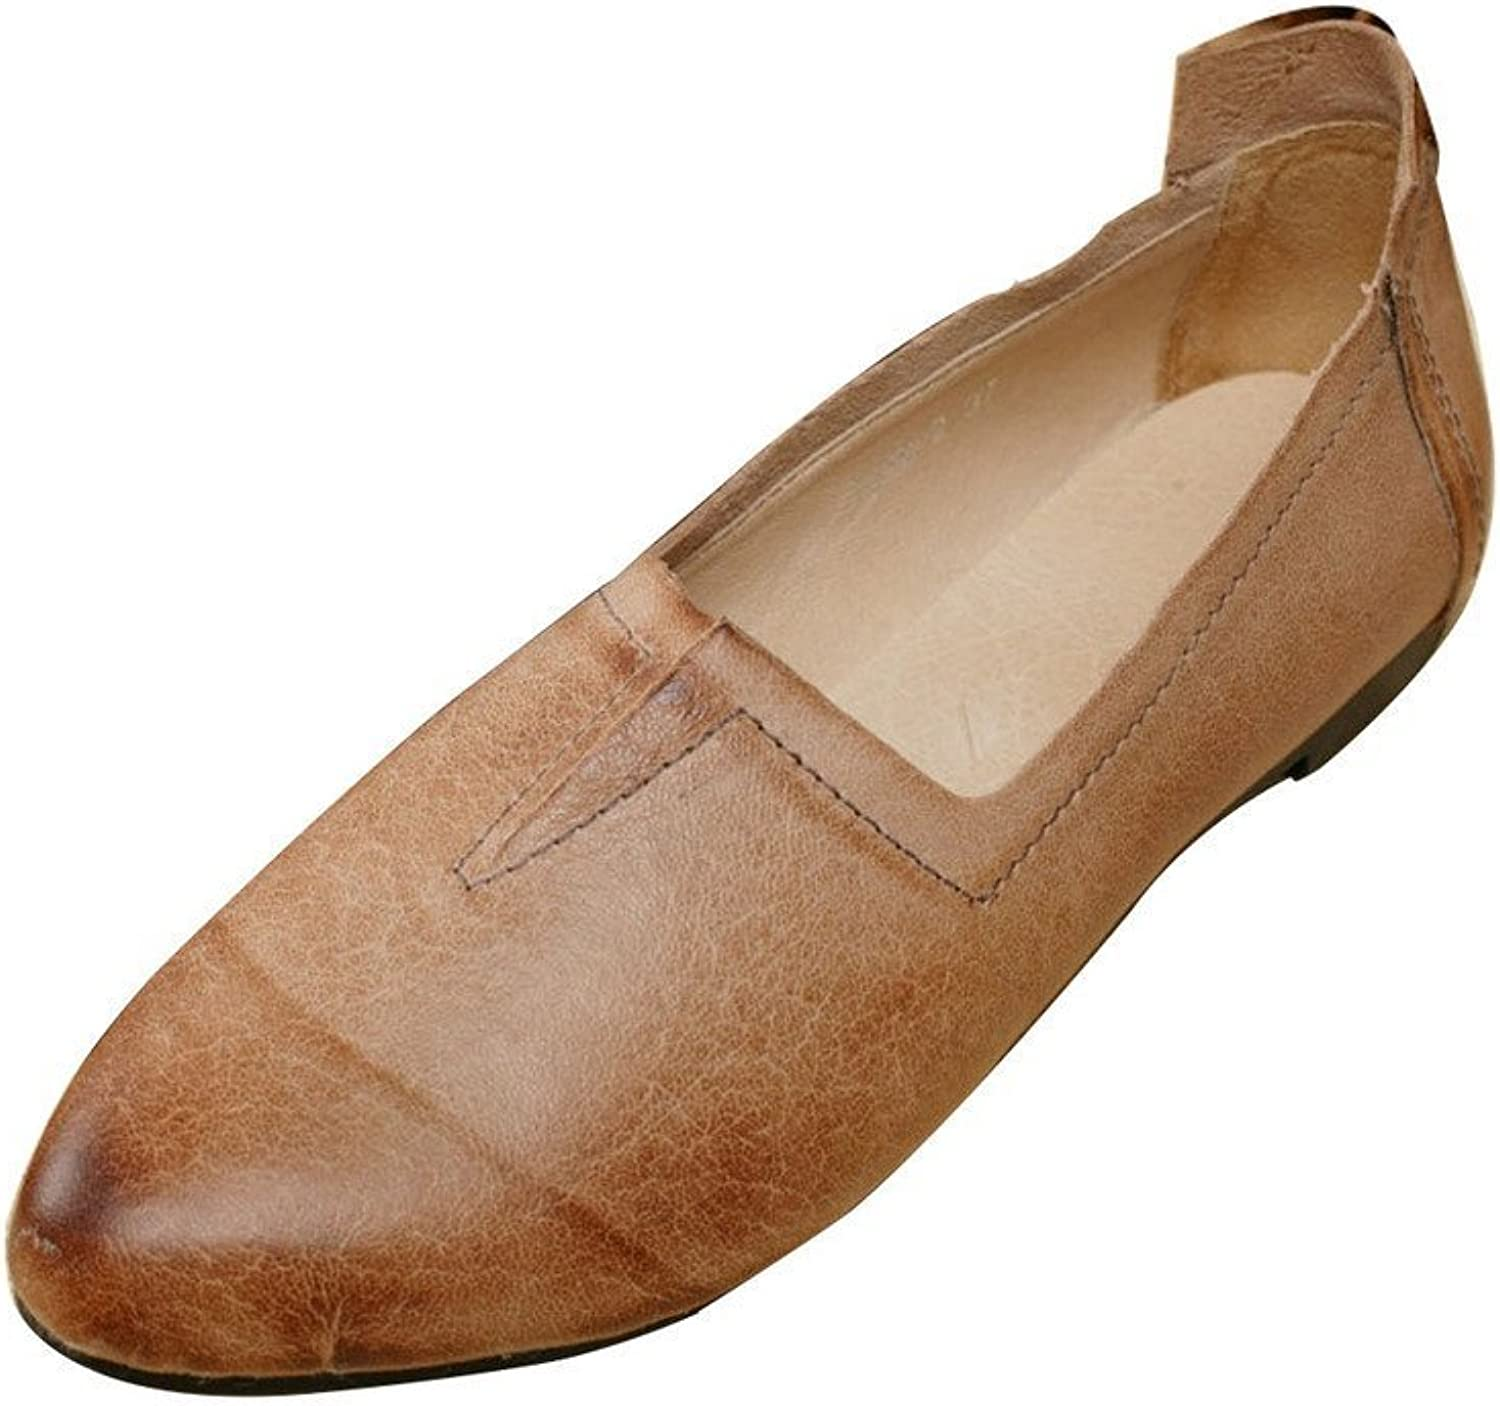 Yolee Women's Pointed Toe Leather Flat shoes